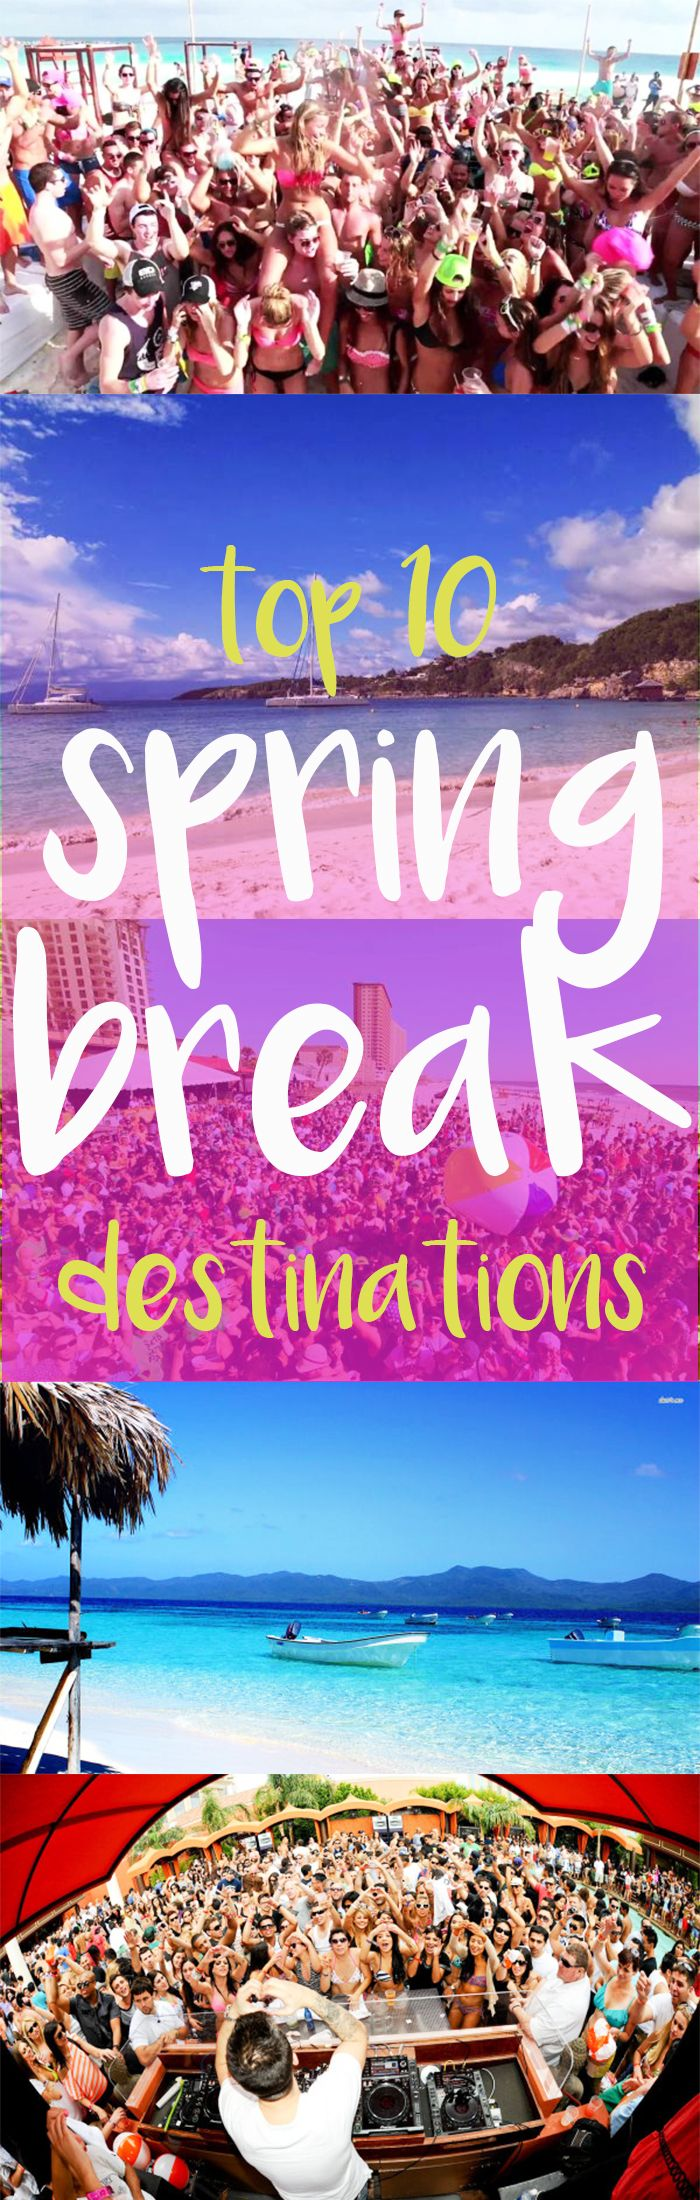 Spring break cabo 2017 dates-6547